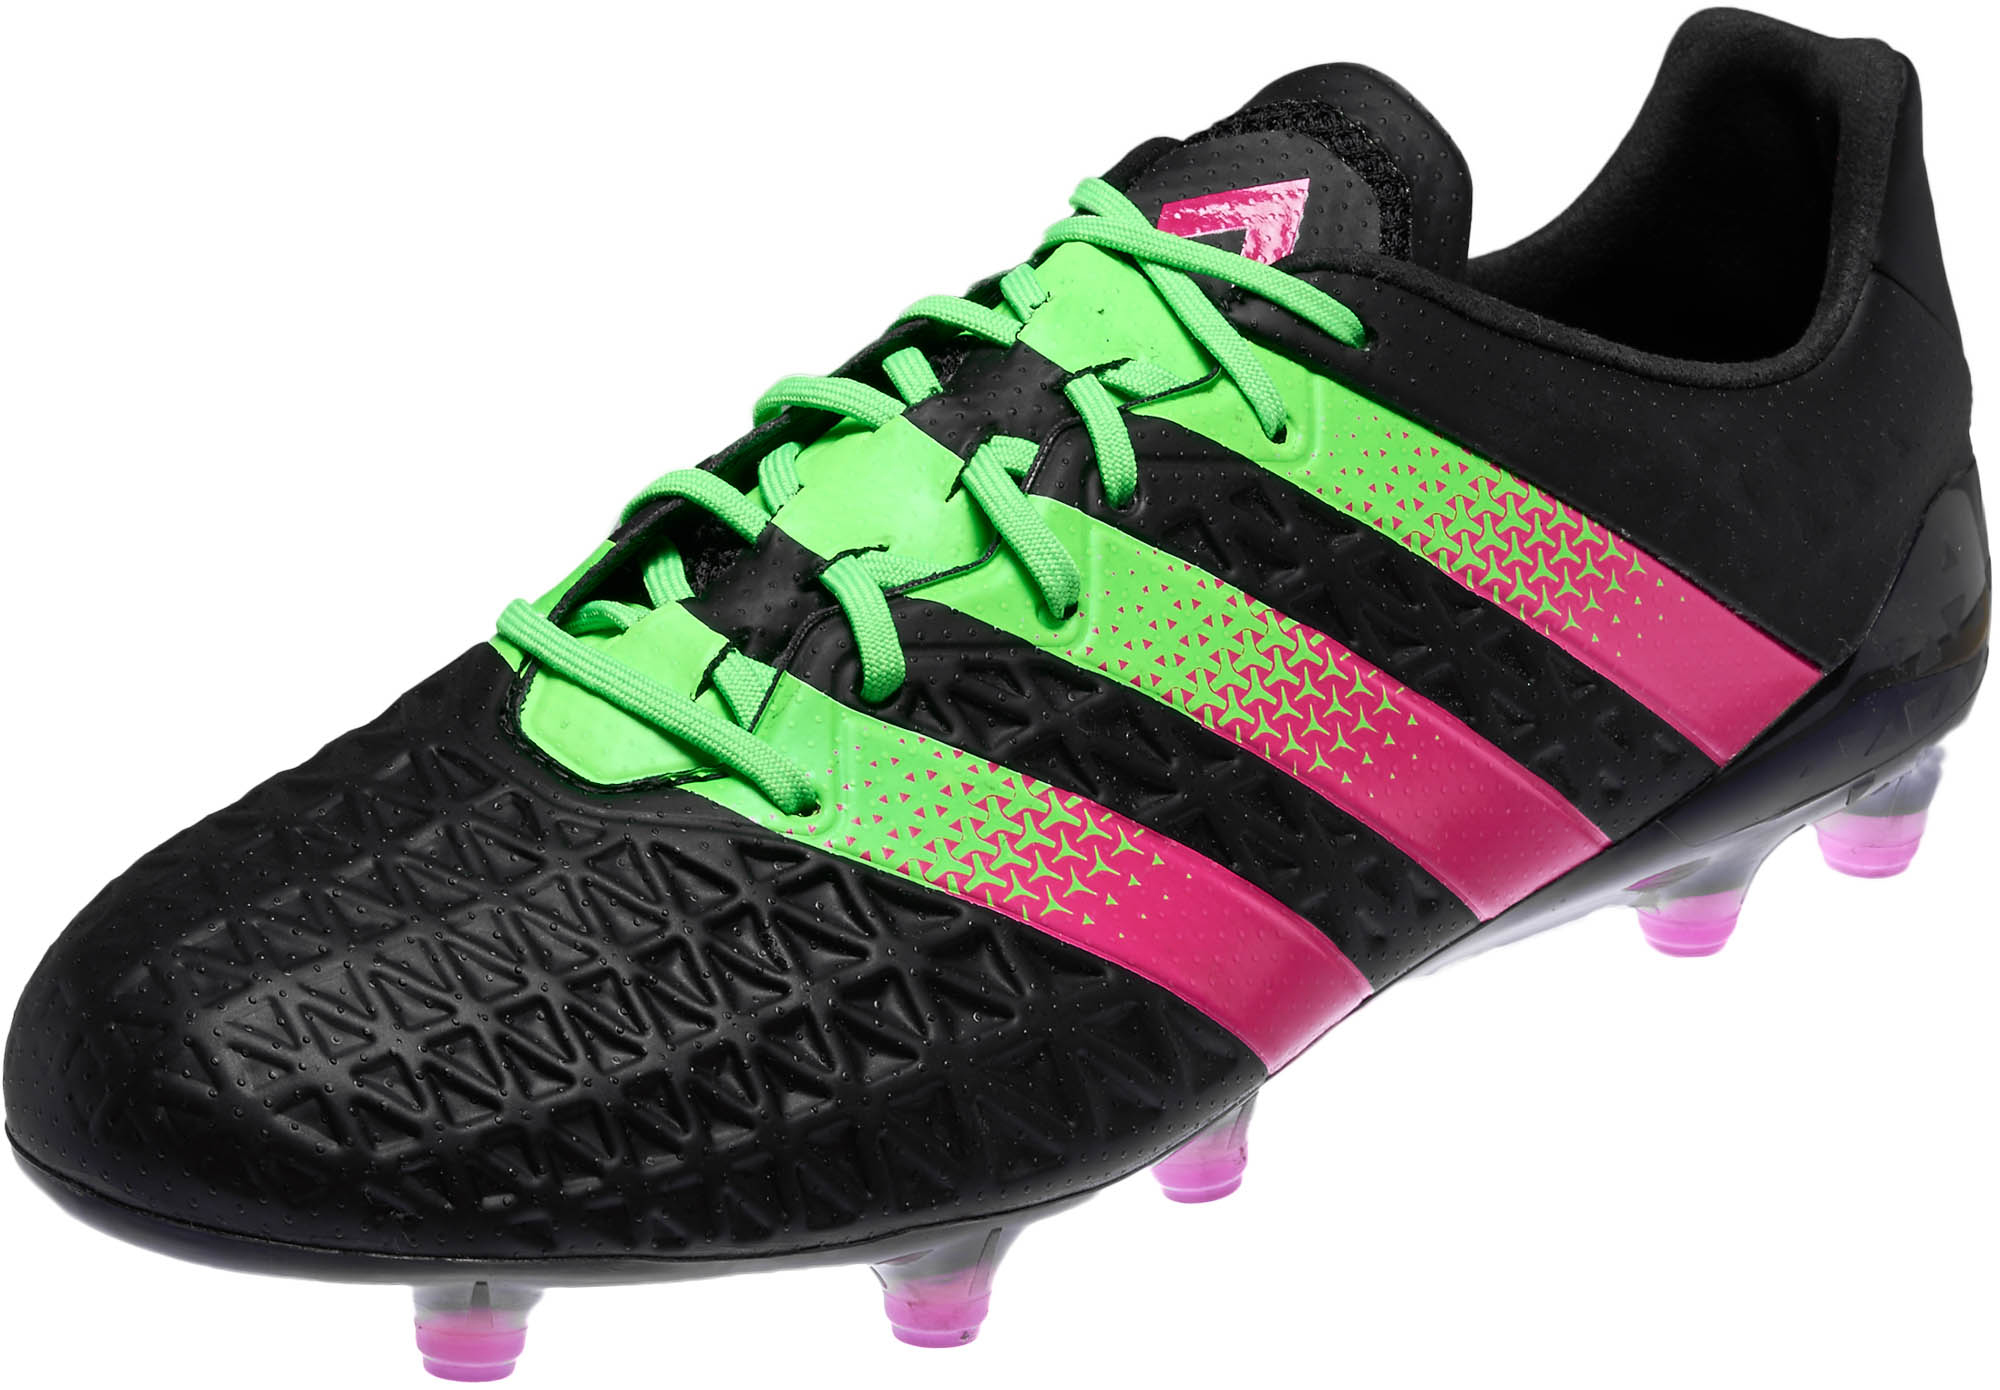 check out 26c64 ba290 adidas ACE 16.1 FG – Black Solar Green